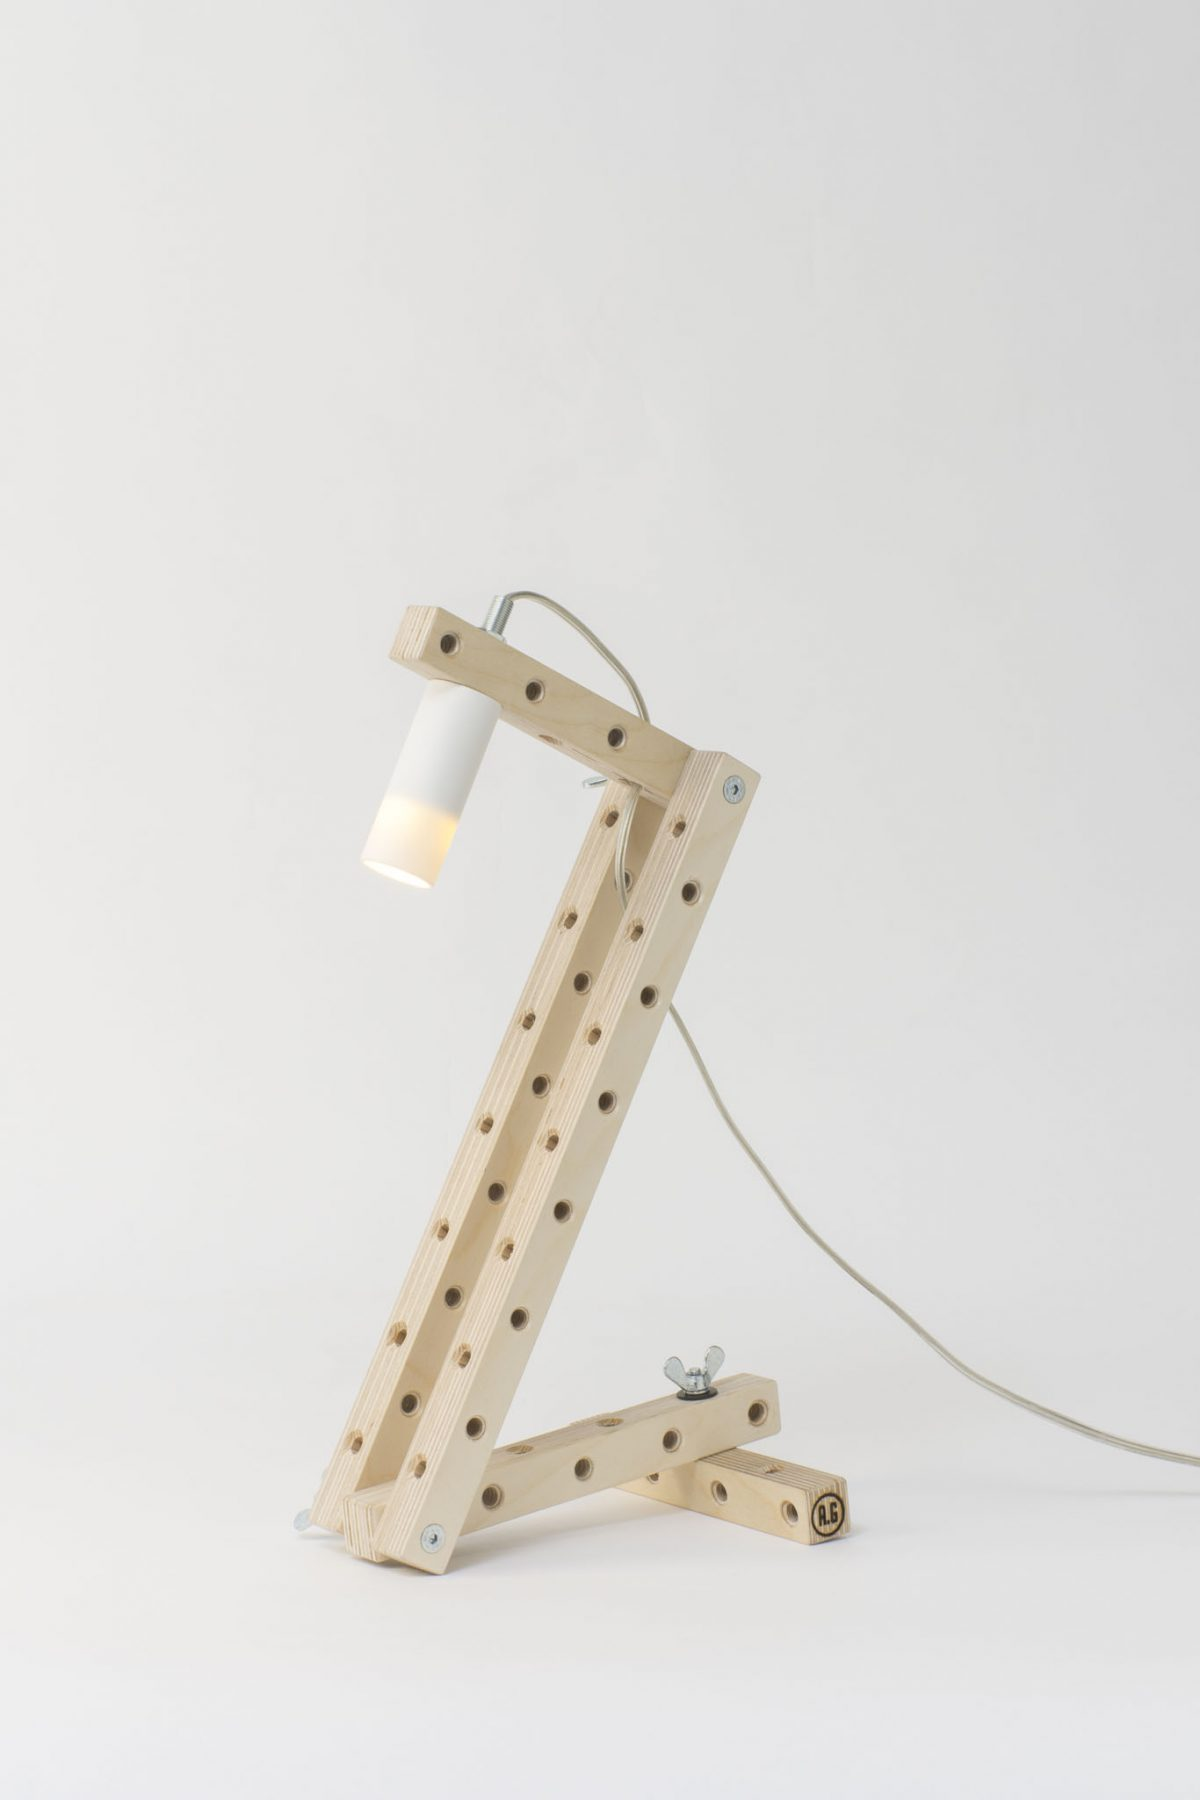 24mm Transformable table lamp